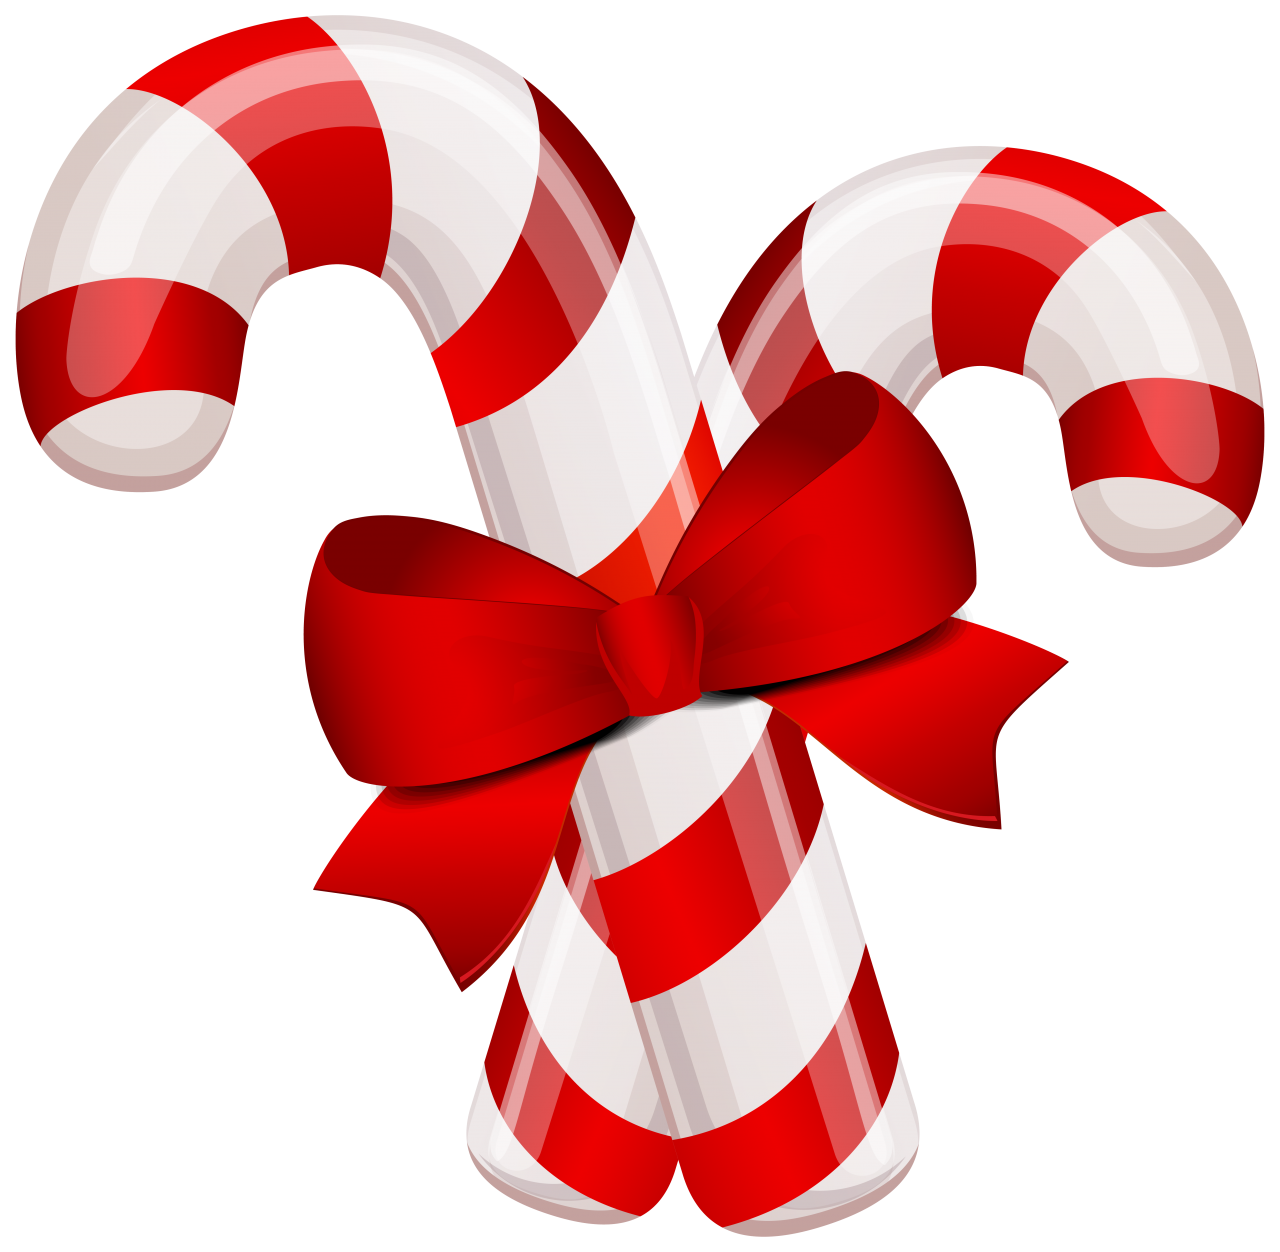 RITE candy cane story